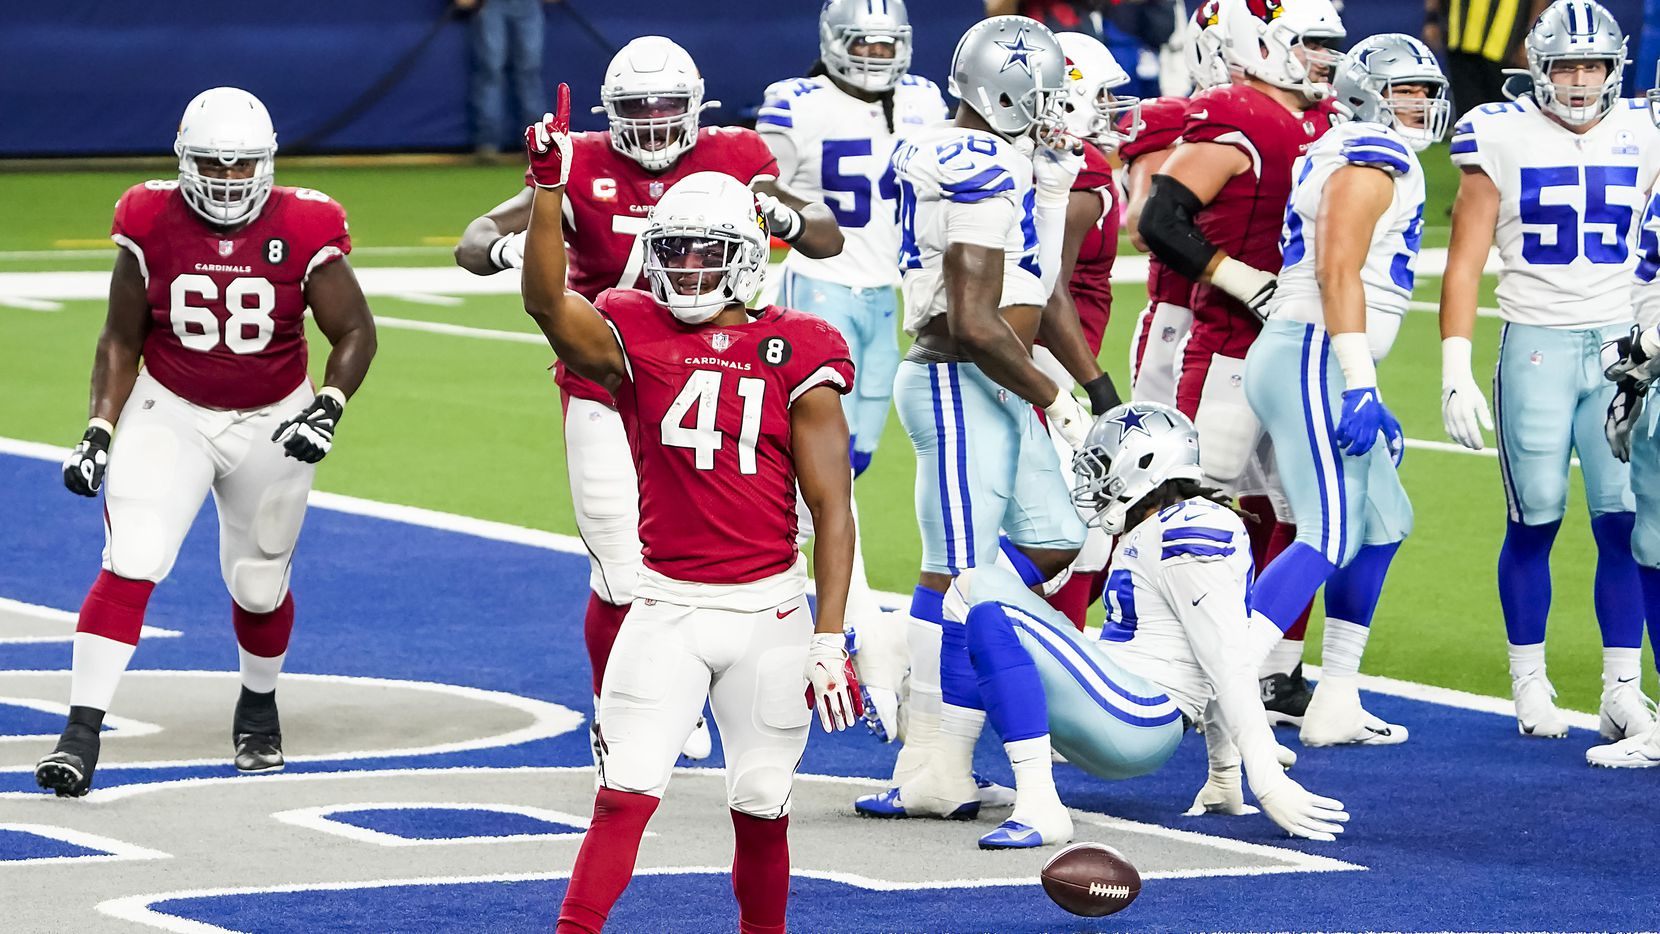 Arizona Cardinals running back Kenyan Drake (41) celebrates after scoring on a touchdown  run during the second quarter of an NFL football game against the Dallas Cowboys at AT&T Stadium on Monday, Oct. 19, 2020, in Arlington.